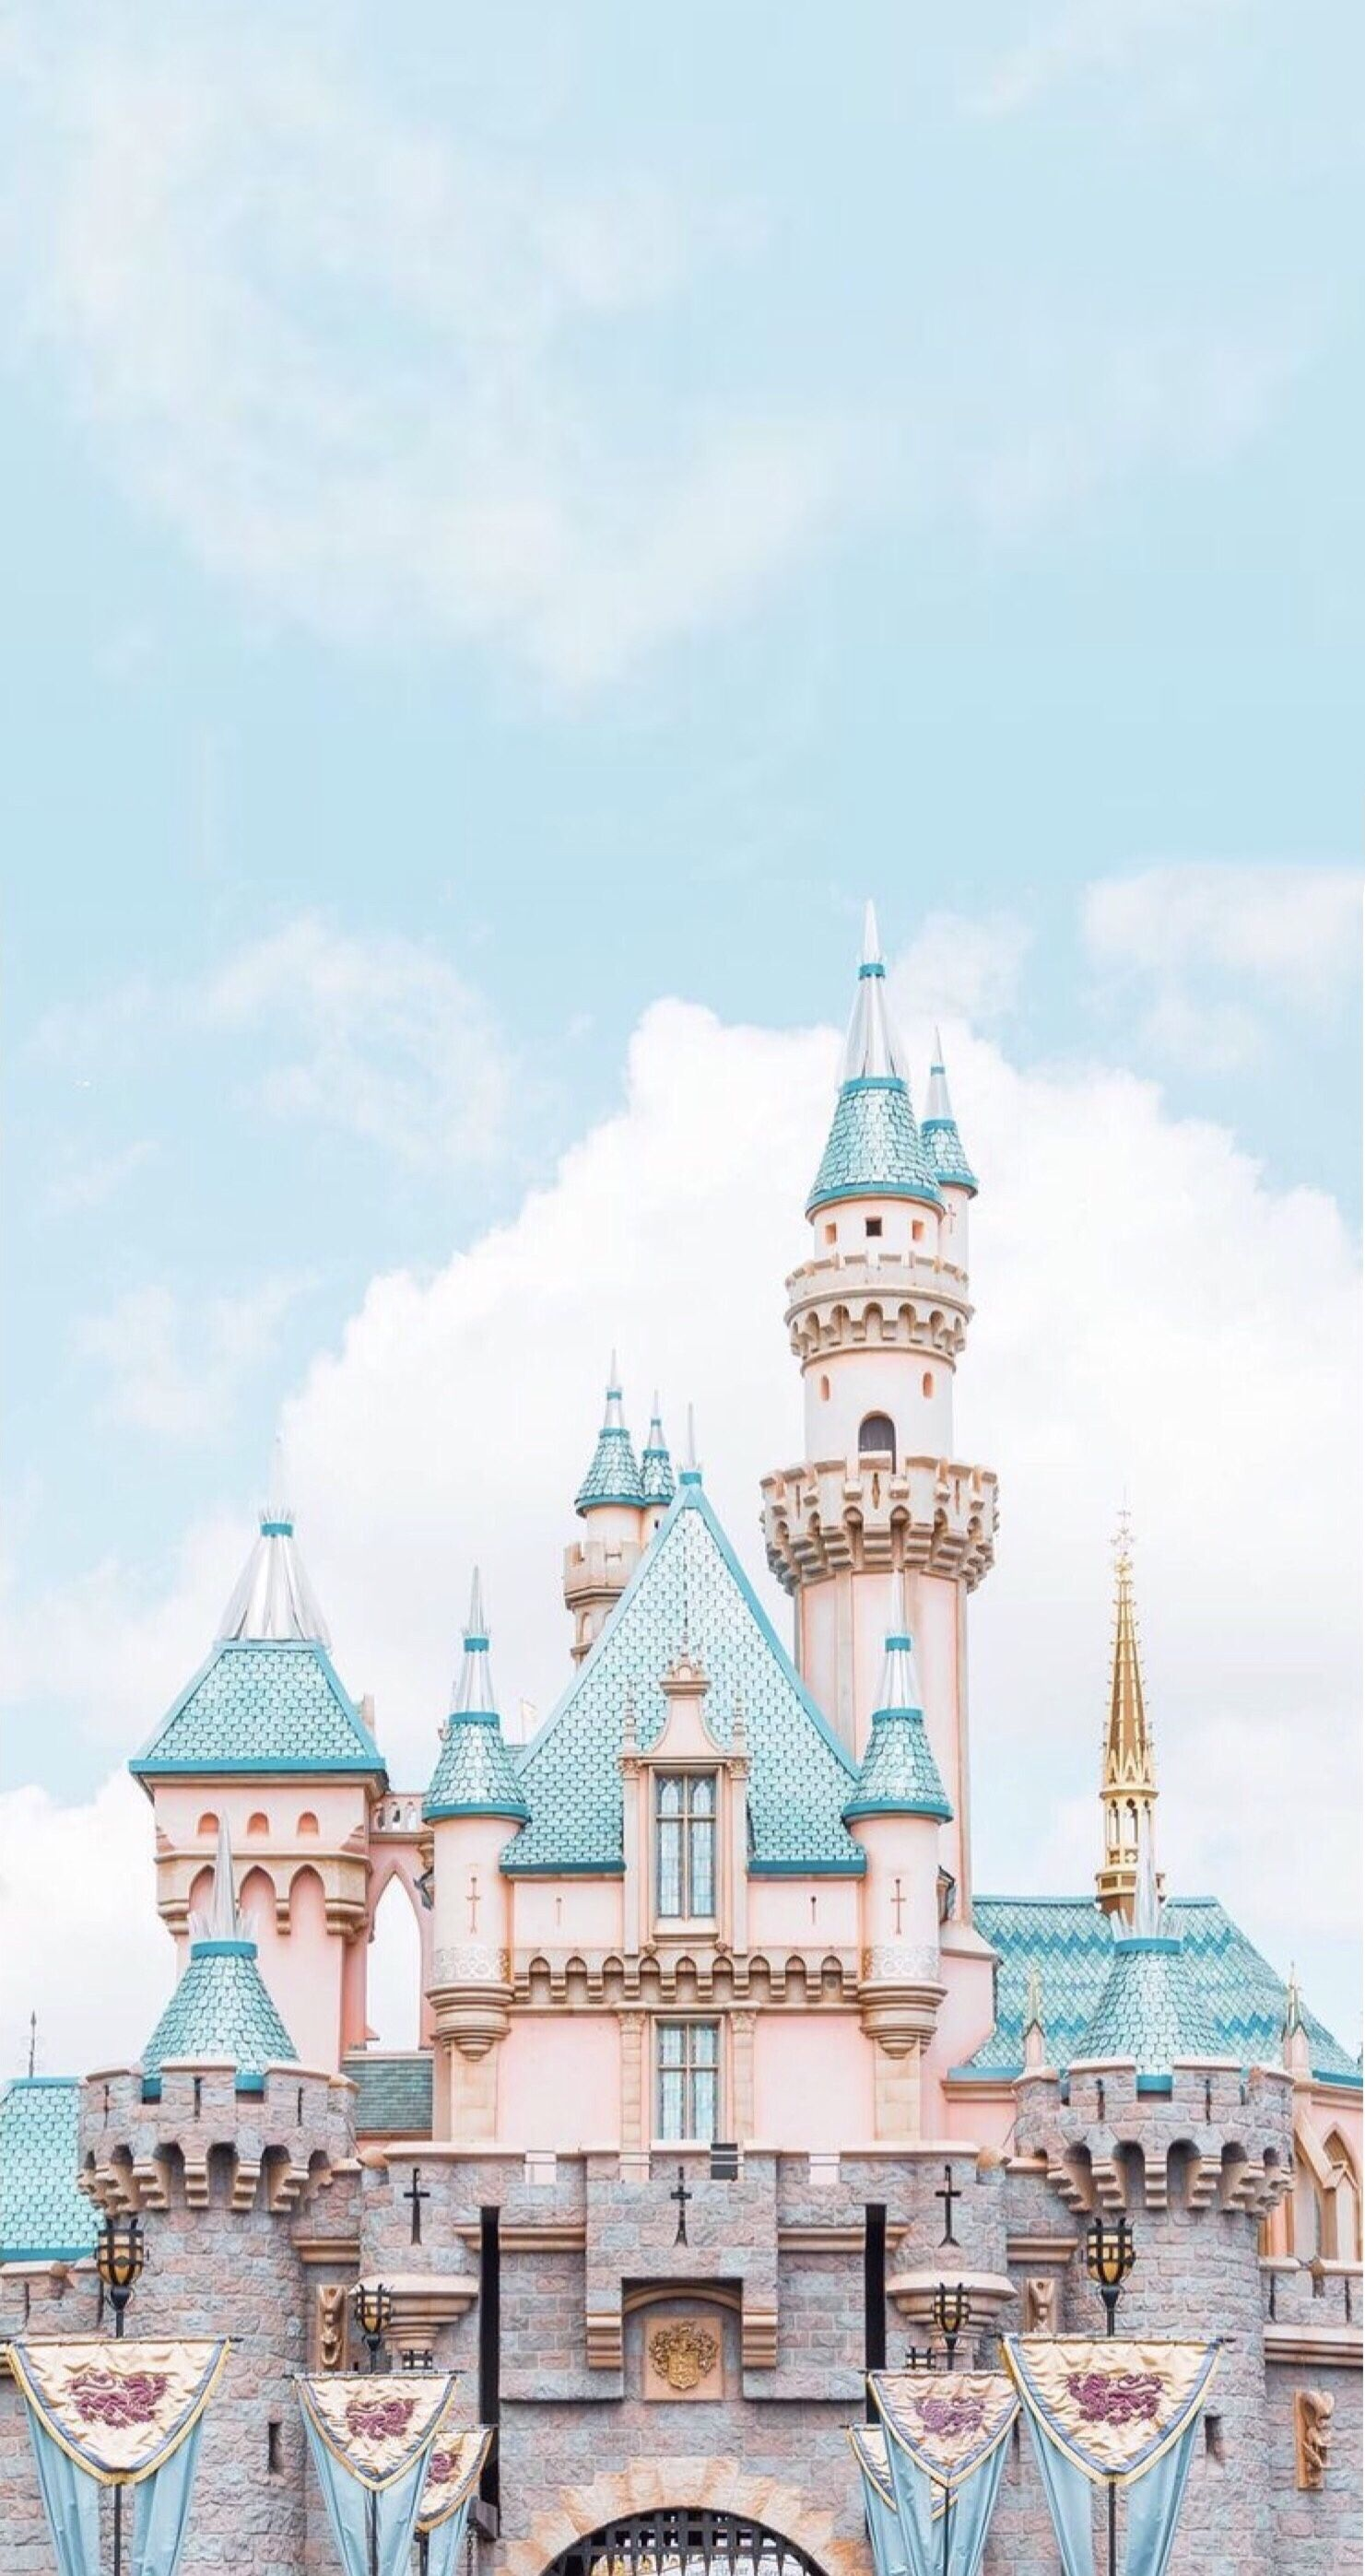 Photo Credit Given To Cindyrelly On Instagram Iphone X Wallpaper Background Sleeping Beauty S Disney Wallpaper Disney Phone Wallpaper Cute Disney Wallpaper